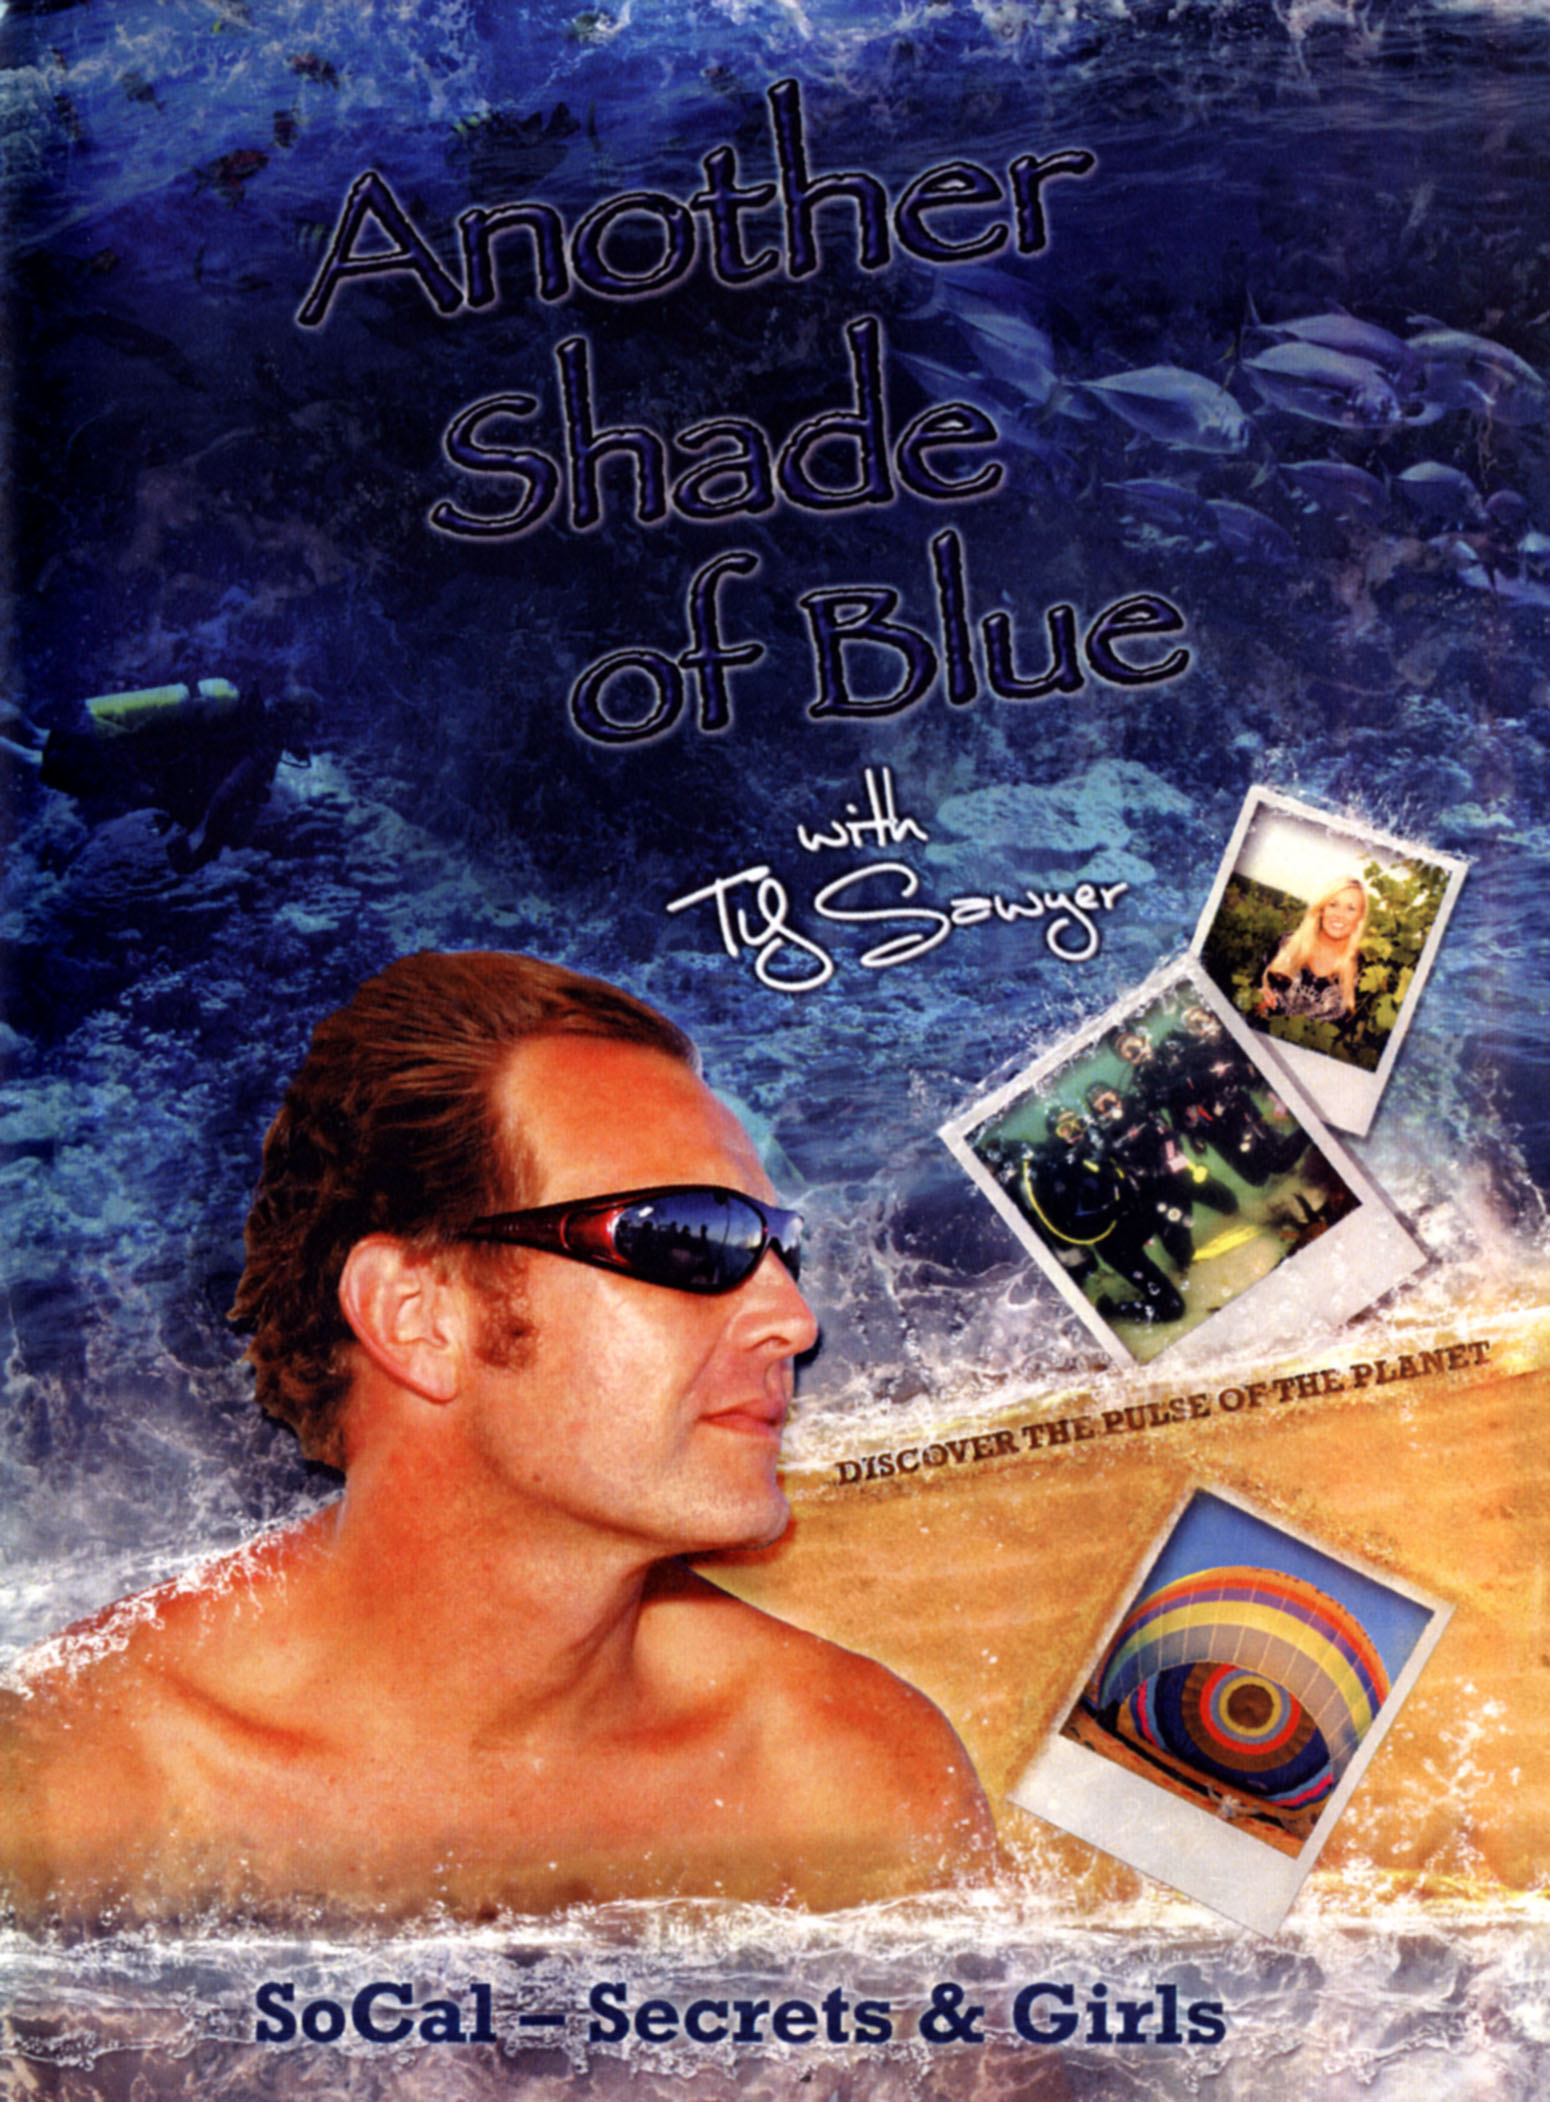 Another Shade of Blue: SoCal - Secrets & Girls